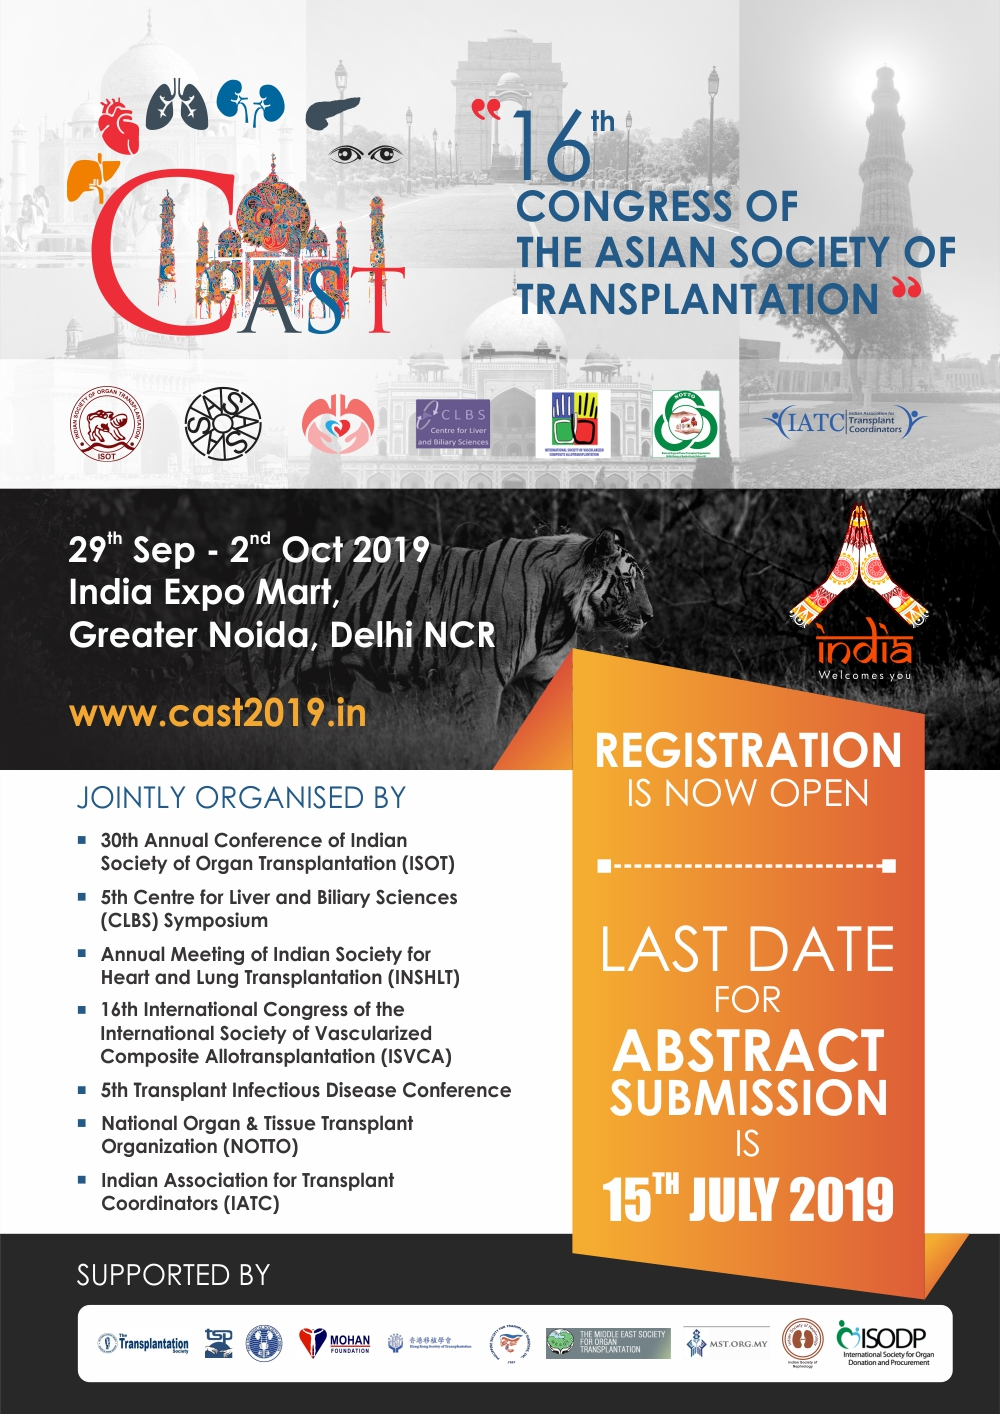 CAST 2019 Registration & Abstract Emailer 27-6-2019